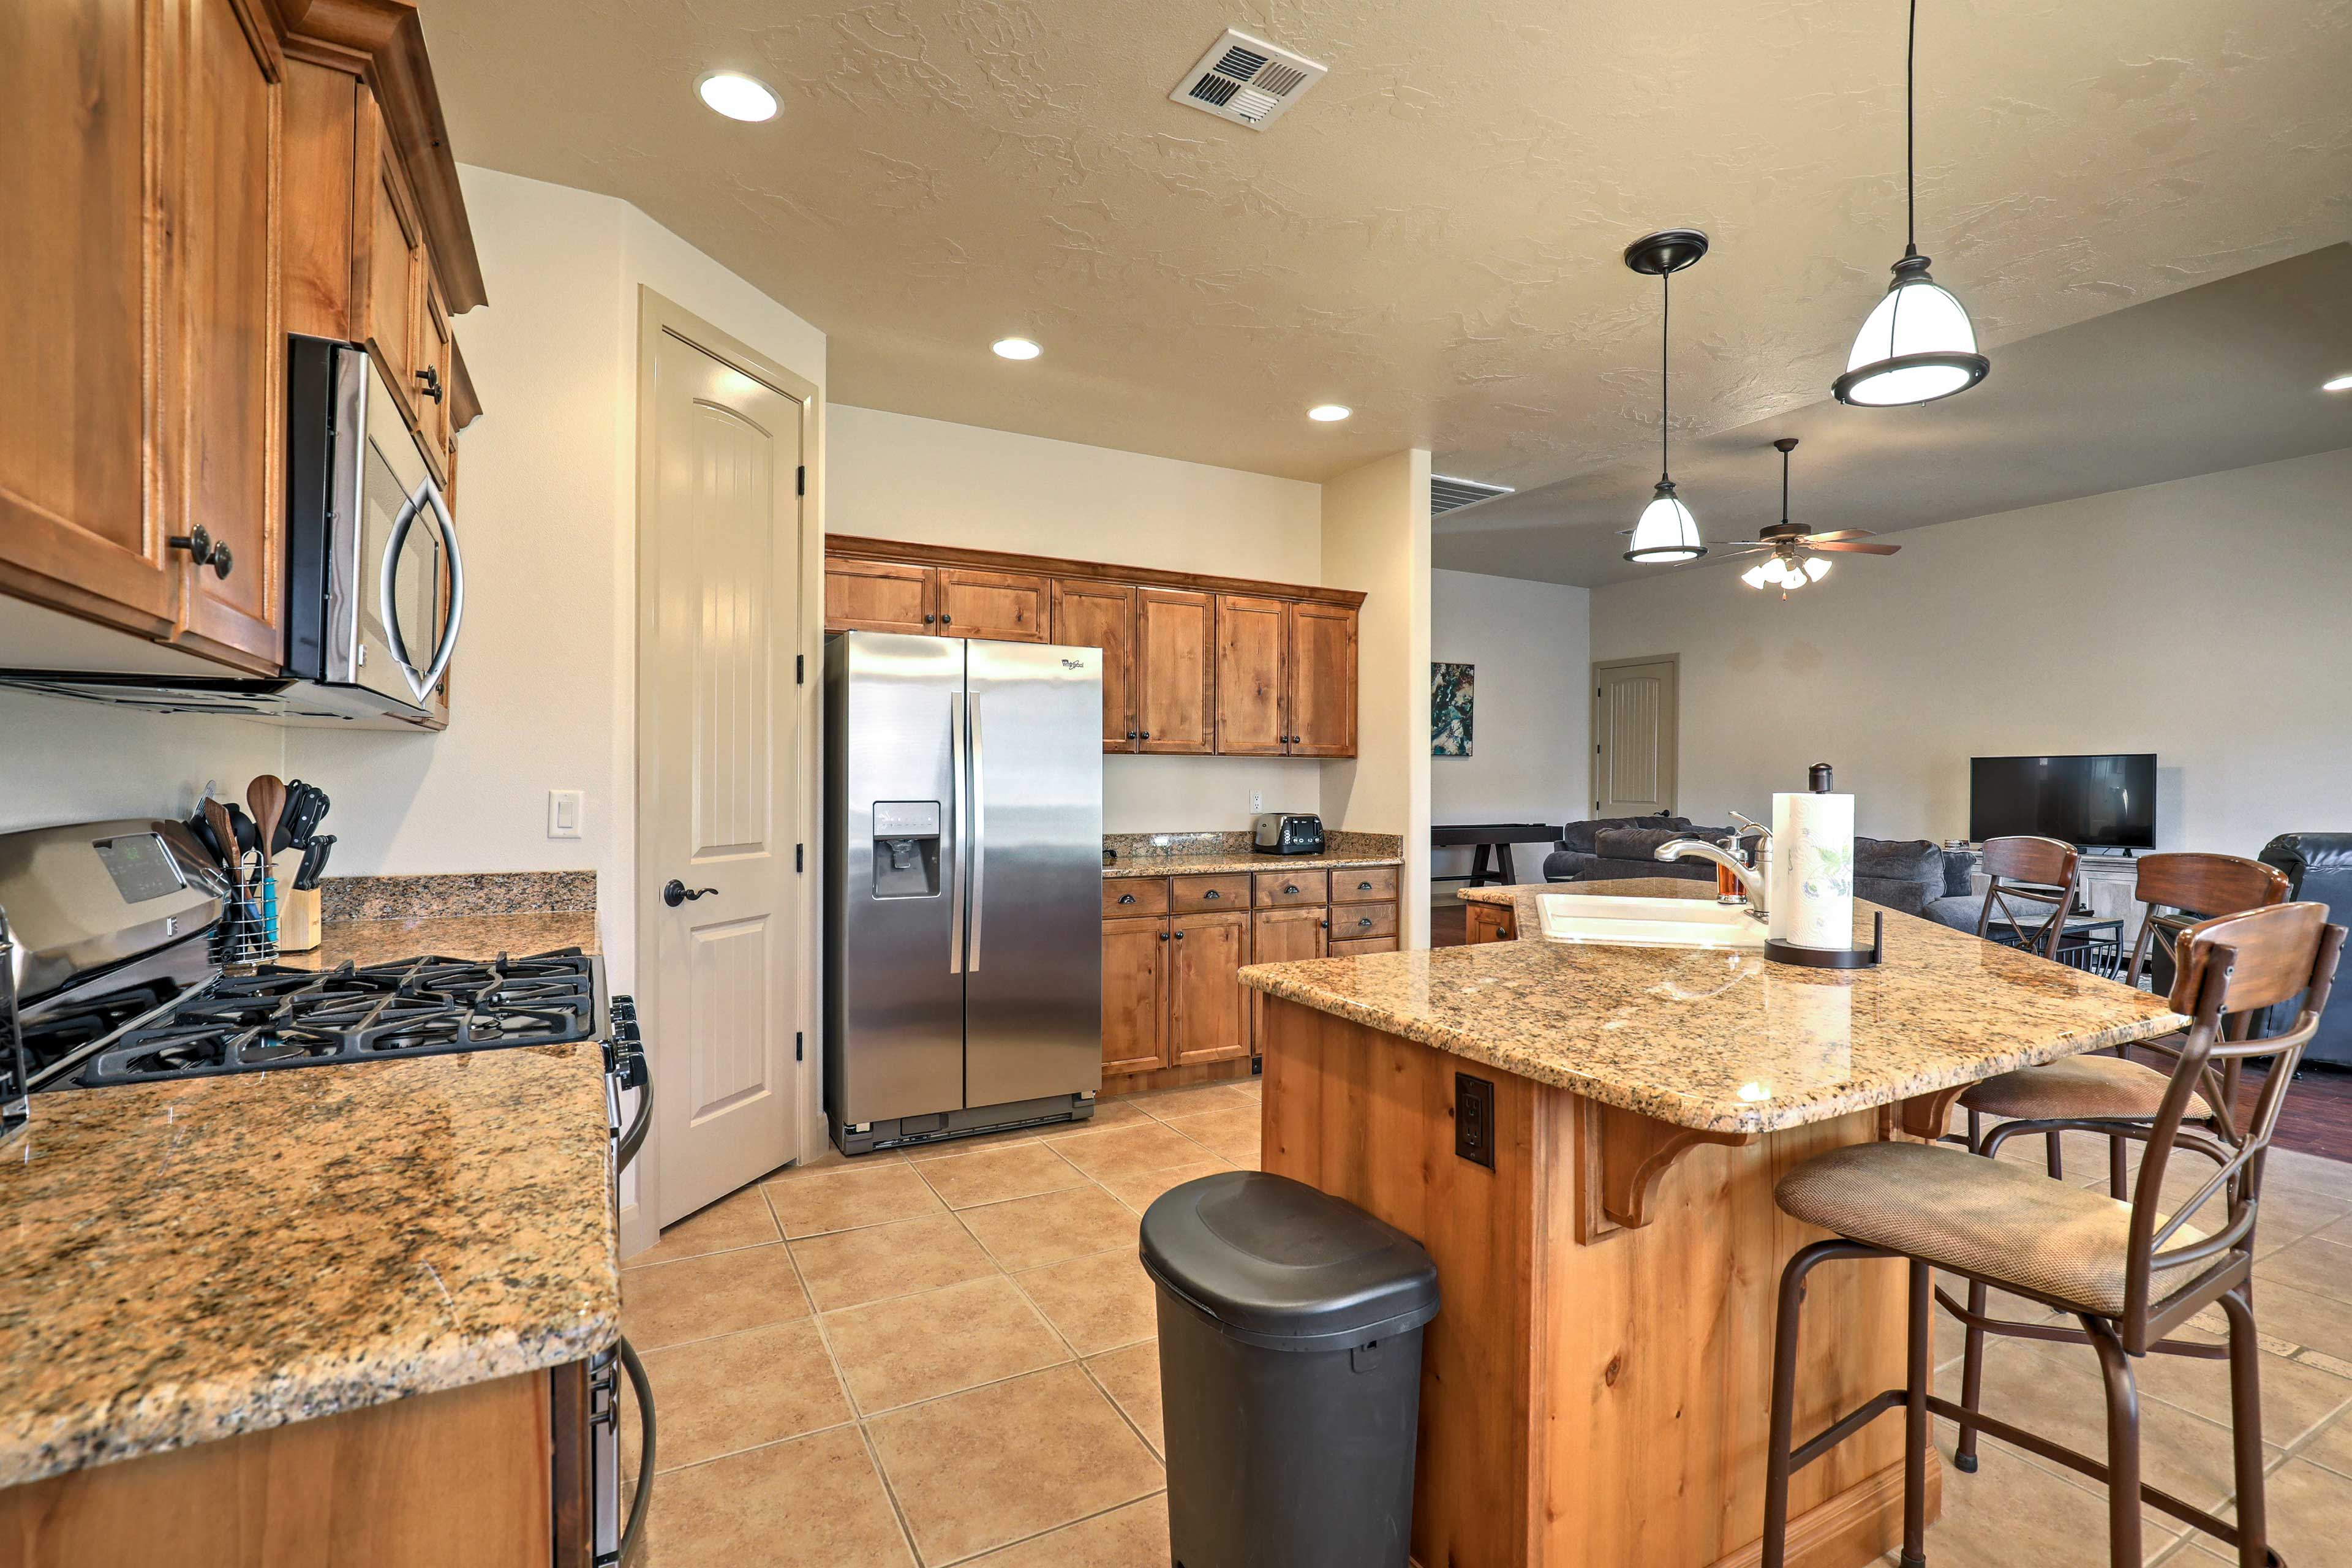 There's plenty of counter space in the kitchen!